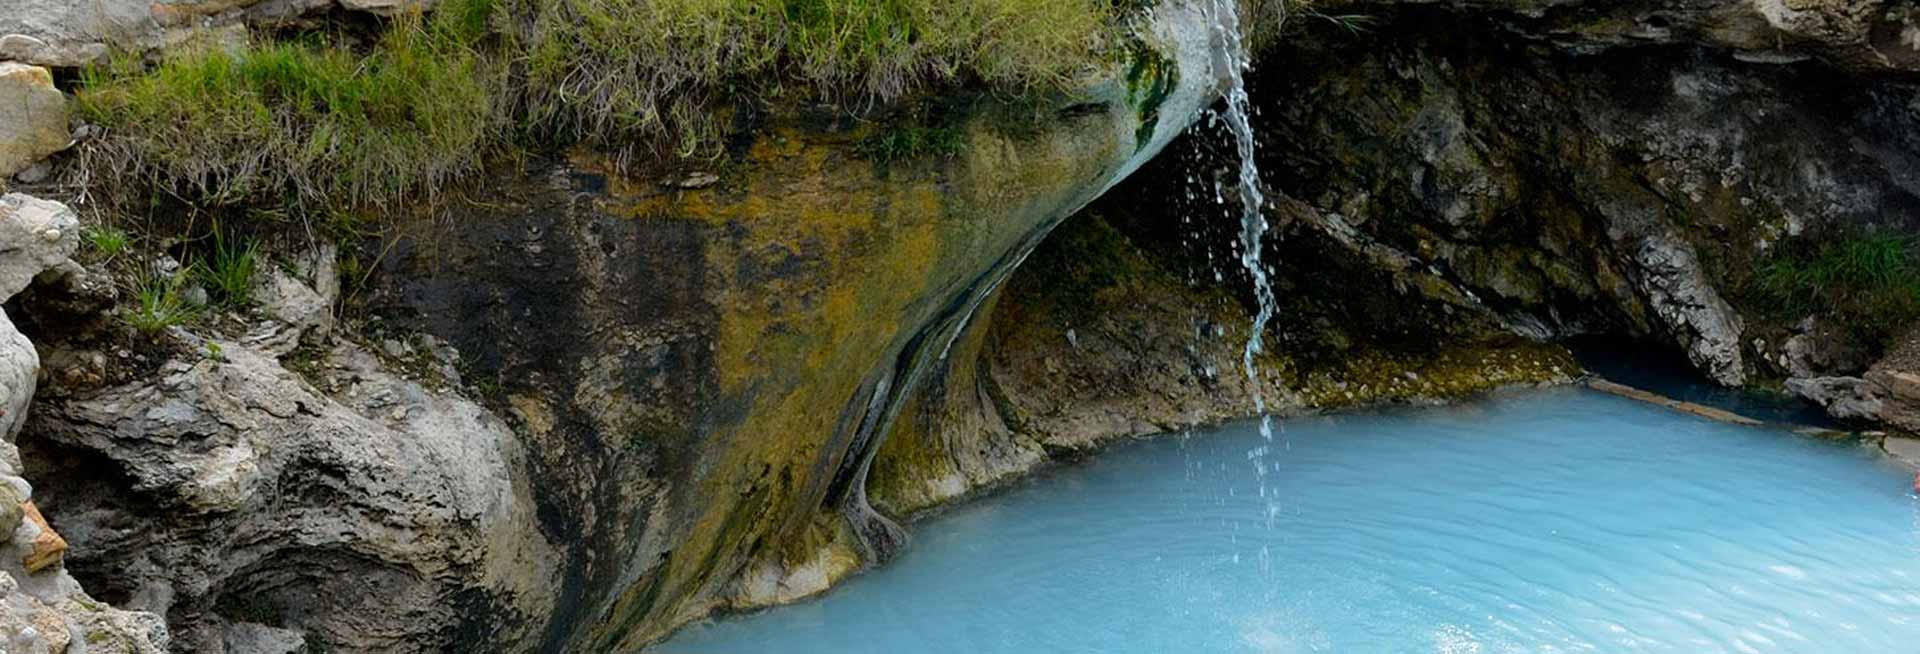 Waterfall into a natural pool.